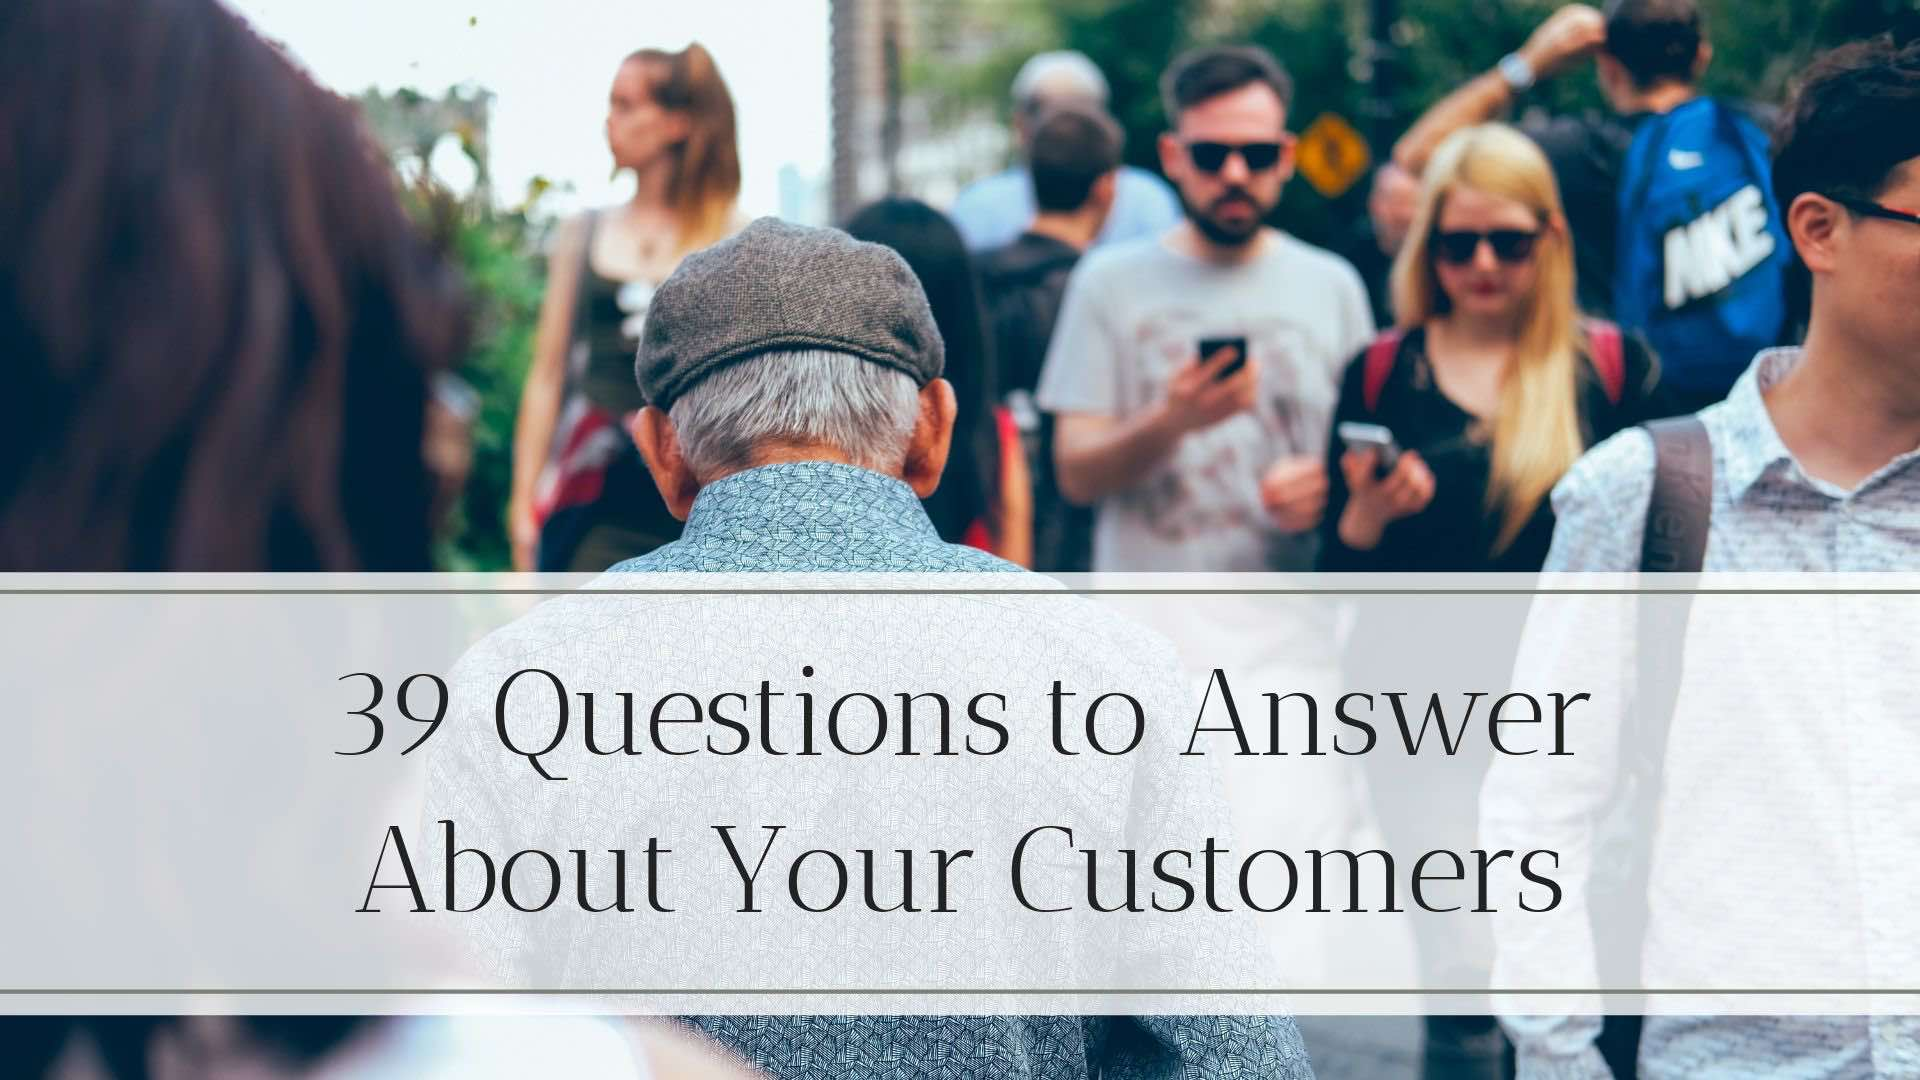 39 Questions to Answer About Your Customers